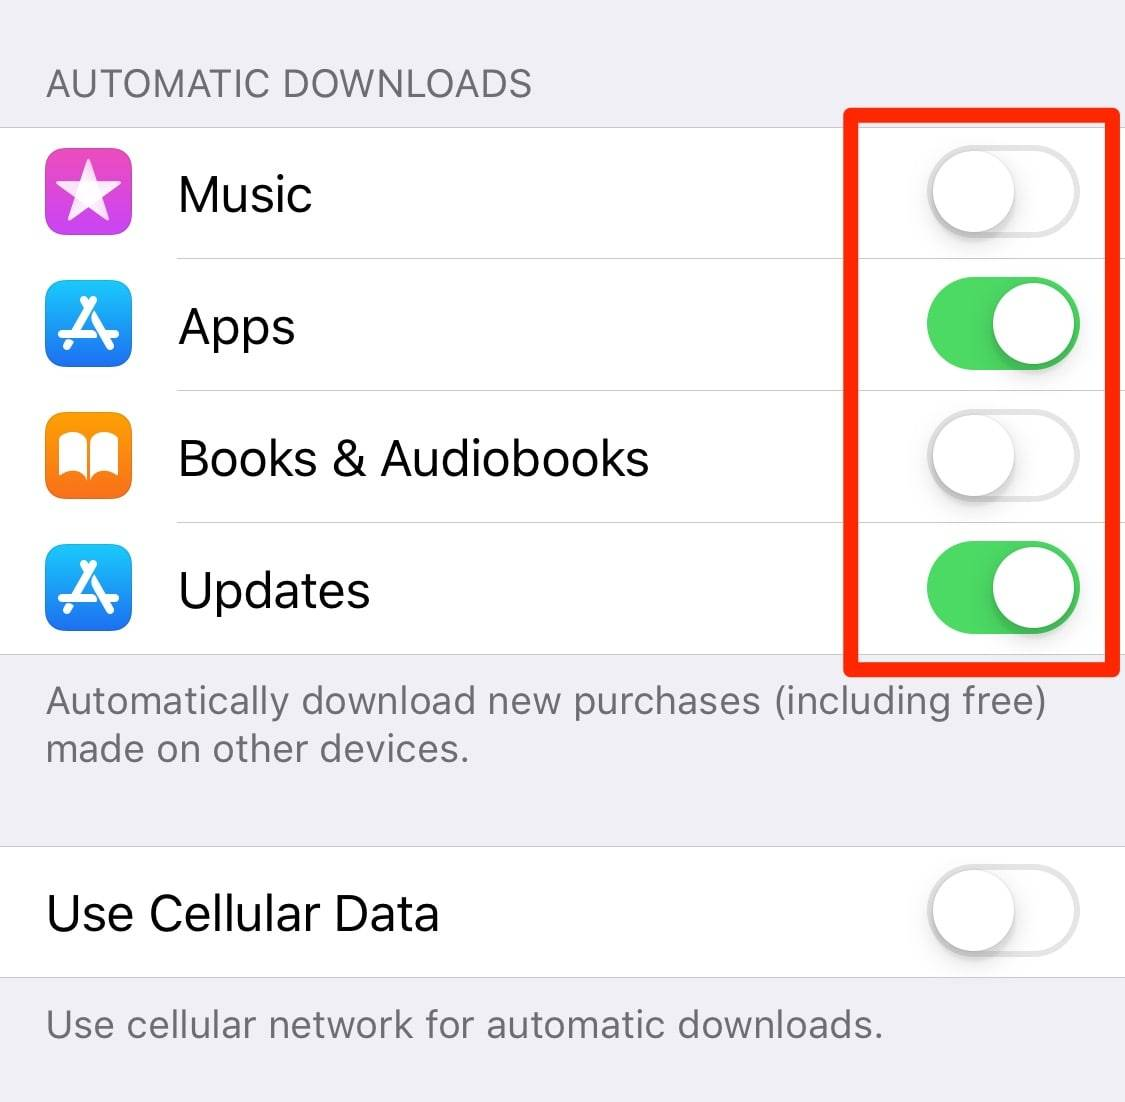 How to Disable Automatic Downloads on iPhone or iPad